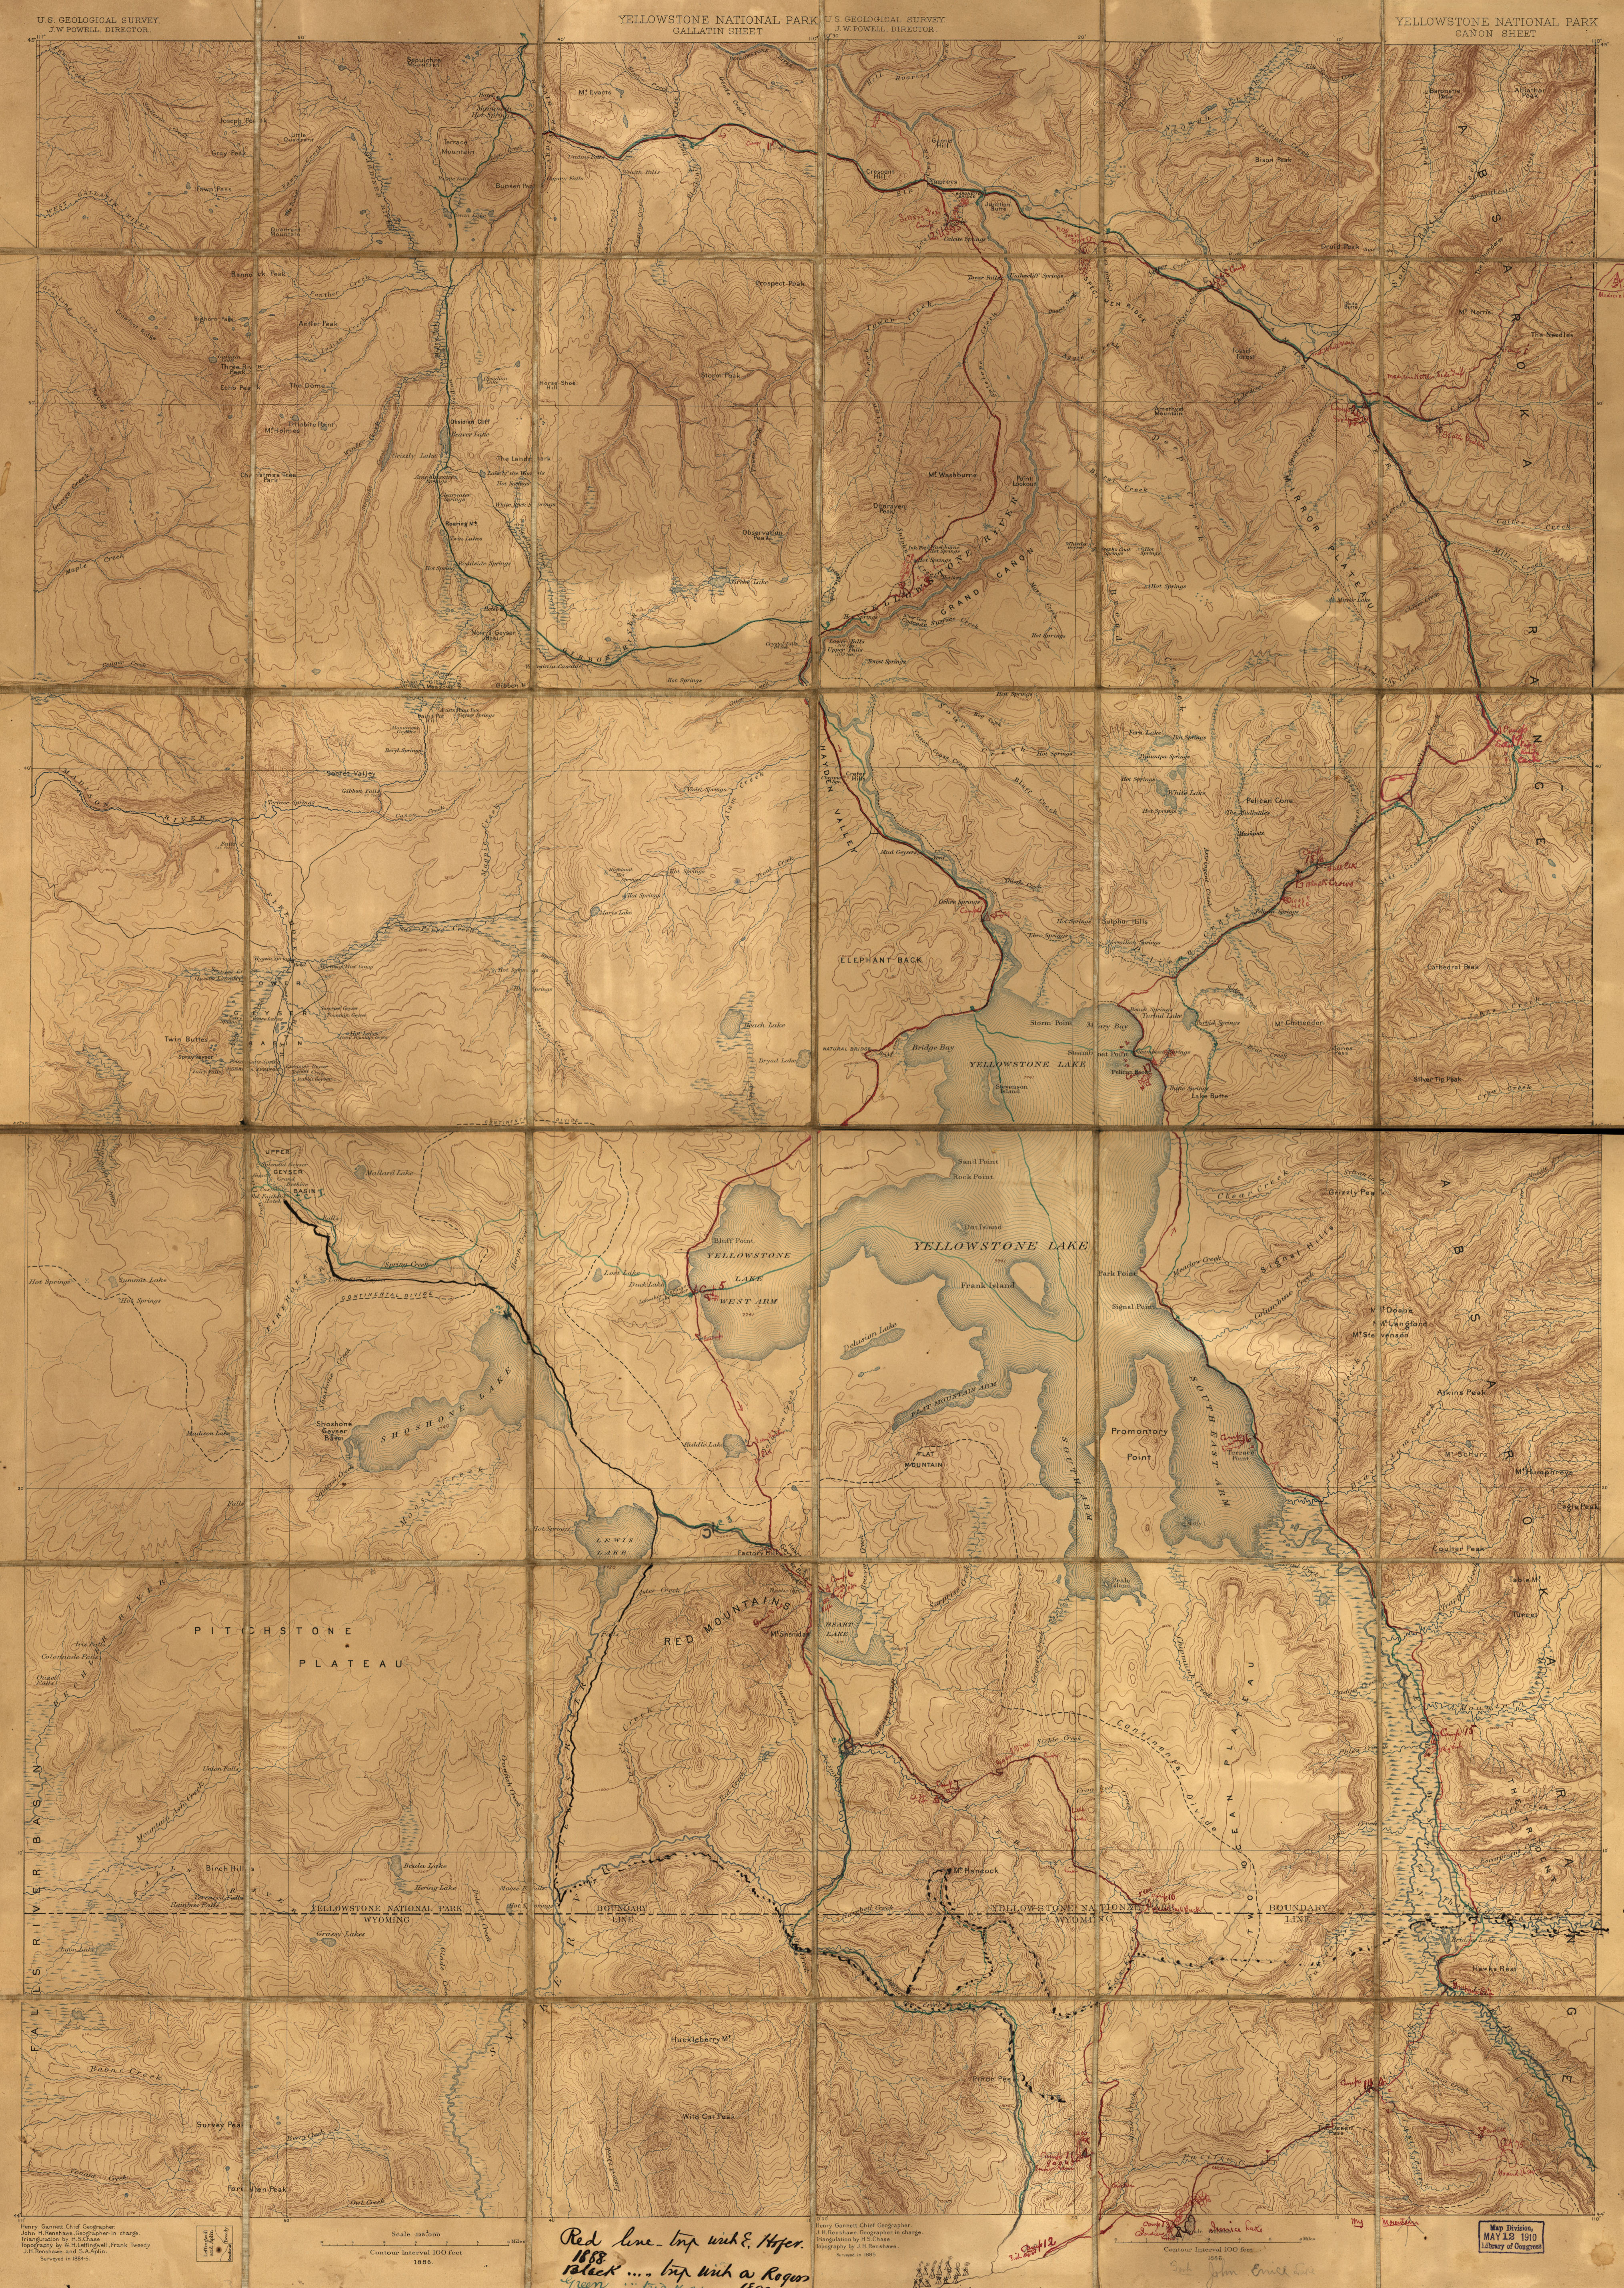 Yellowstone National Park 1884 Survey Map from the Library of Congress Collection